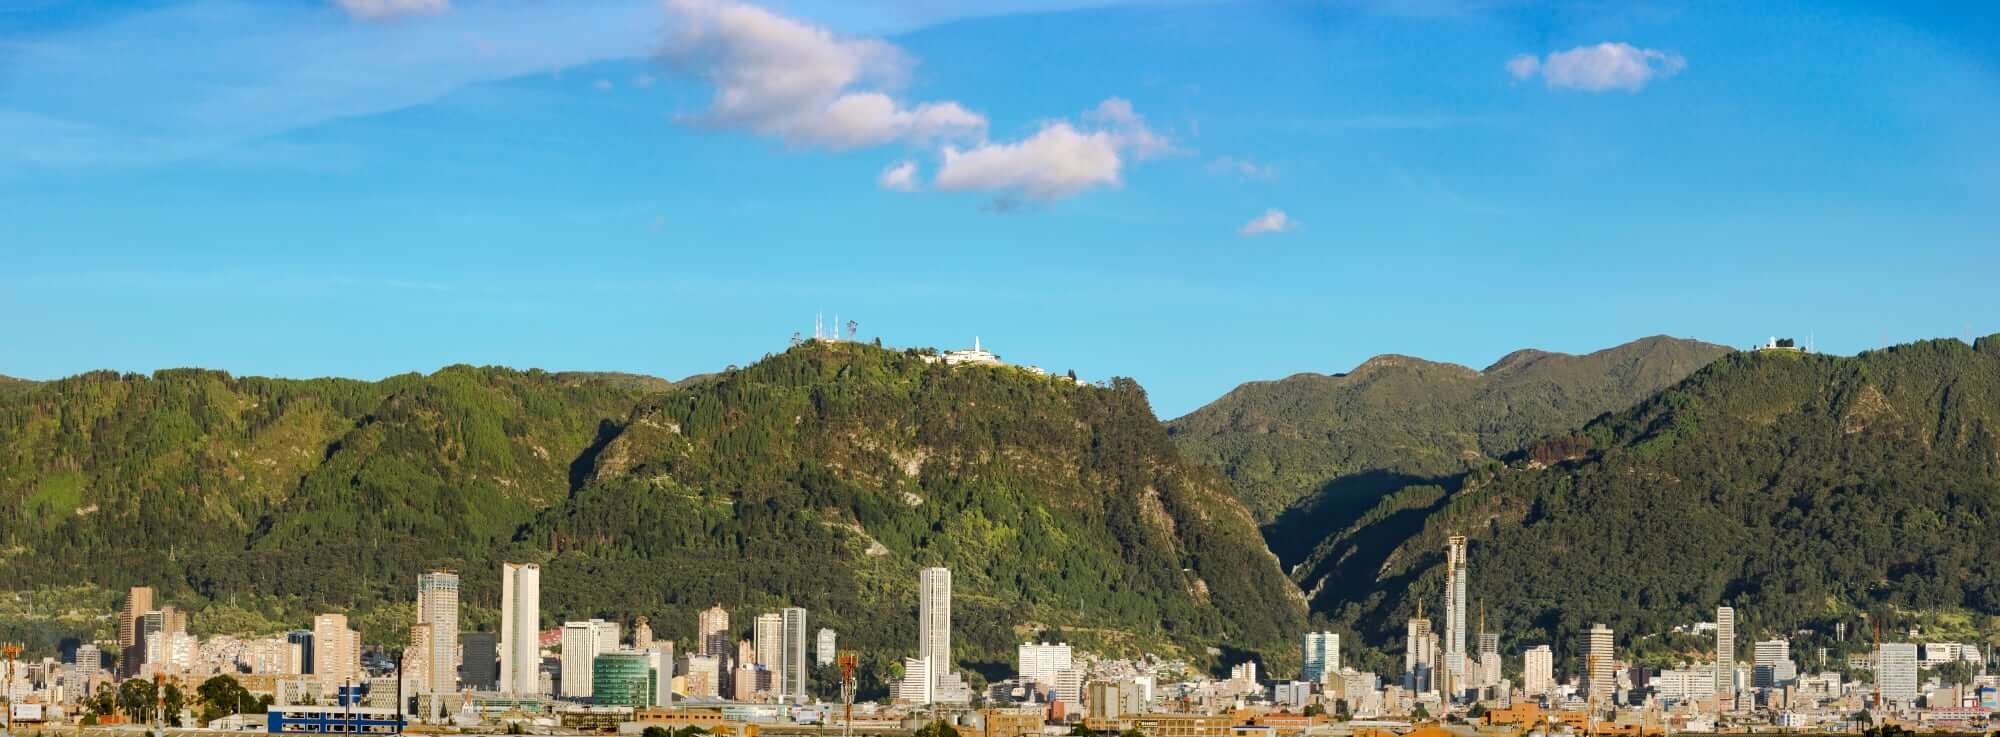 Bogota with Monserrate Hill andSancutary